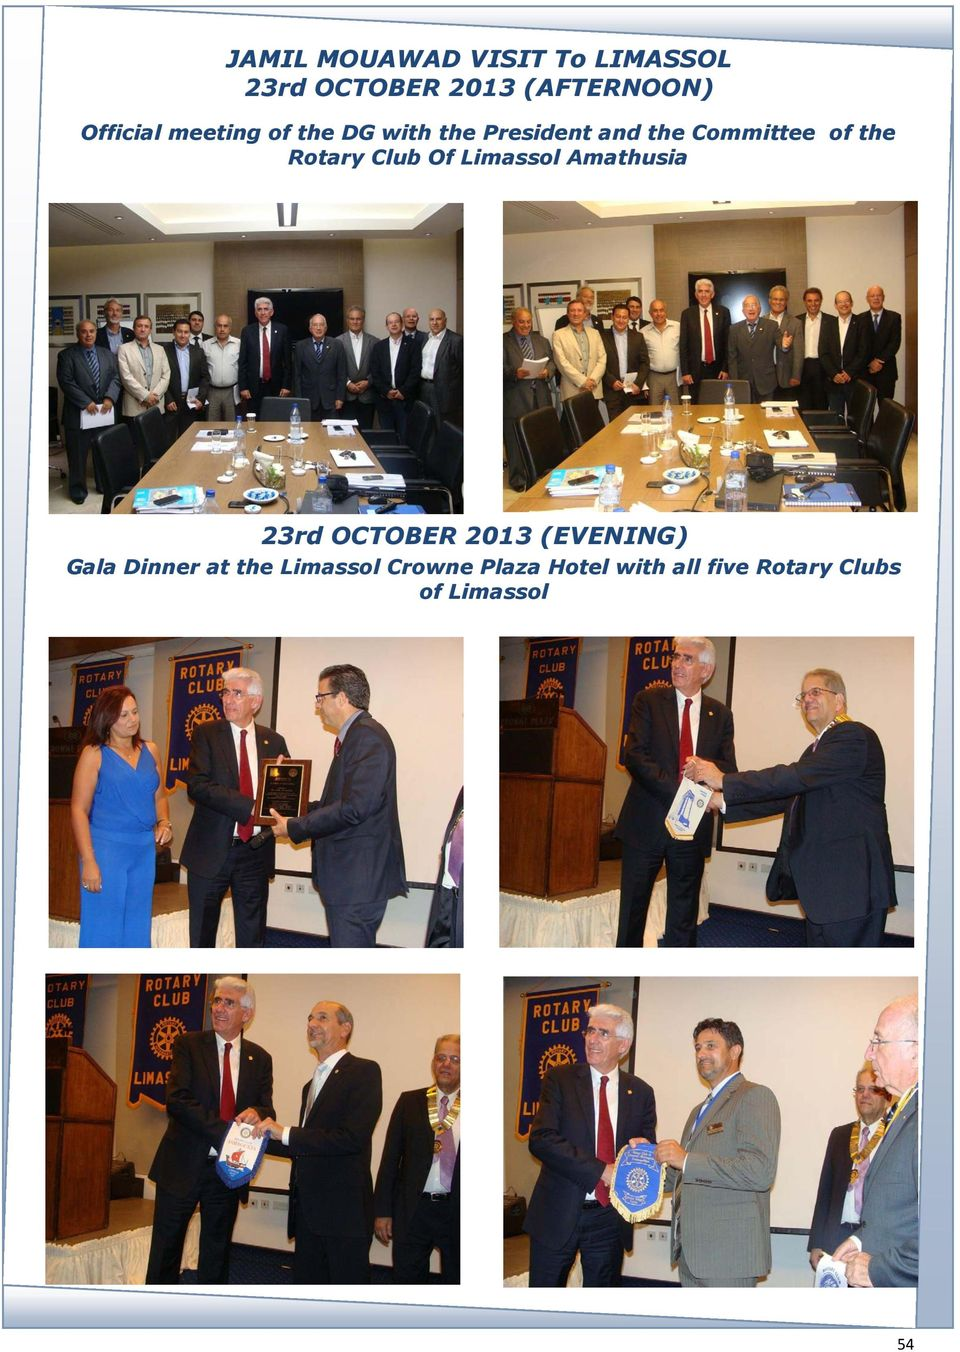 Club Of Limassol Amathusia 23rd OCTOBER 2013 (EVENING) Gala Dinner at